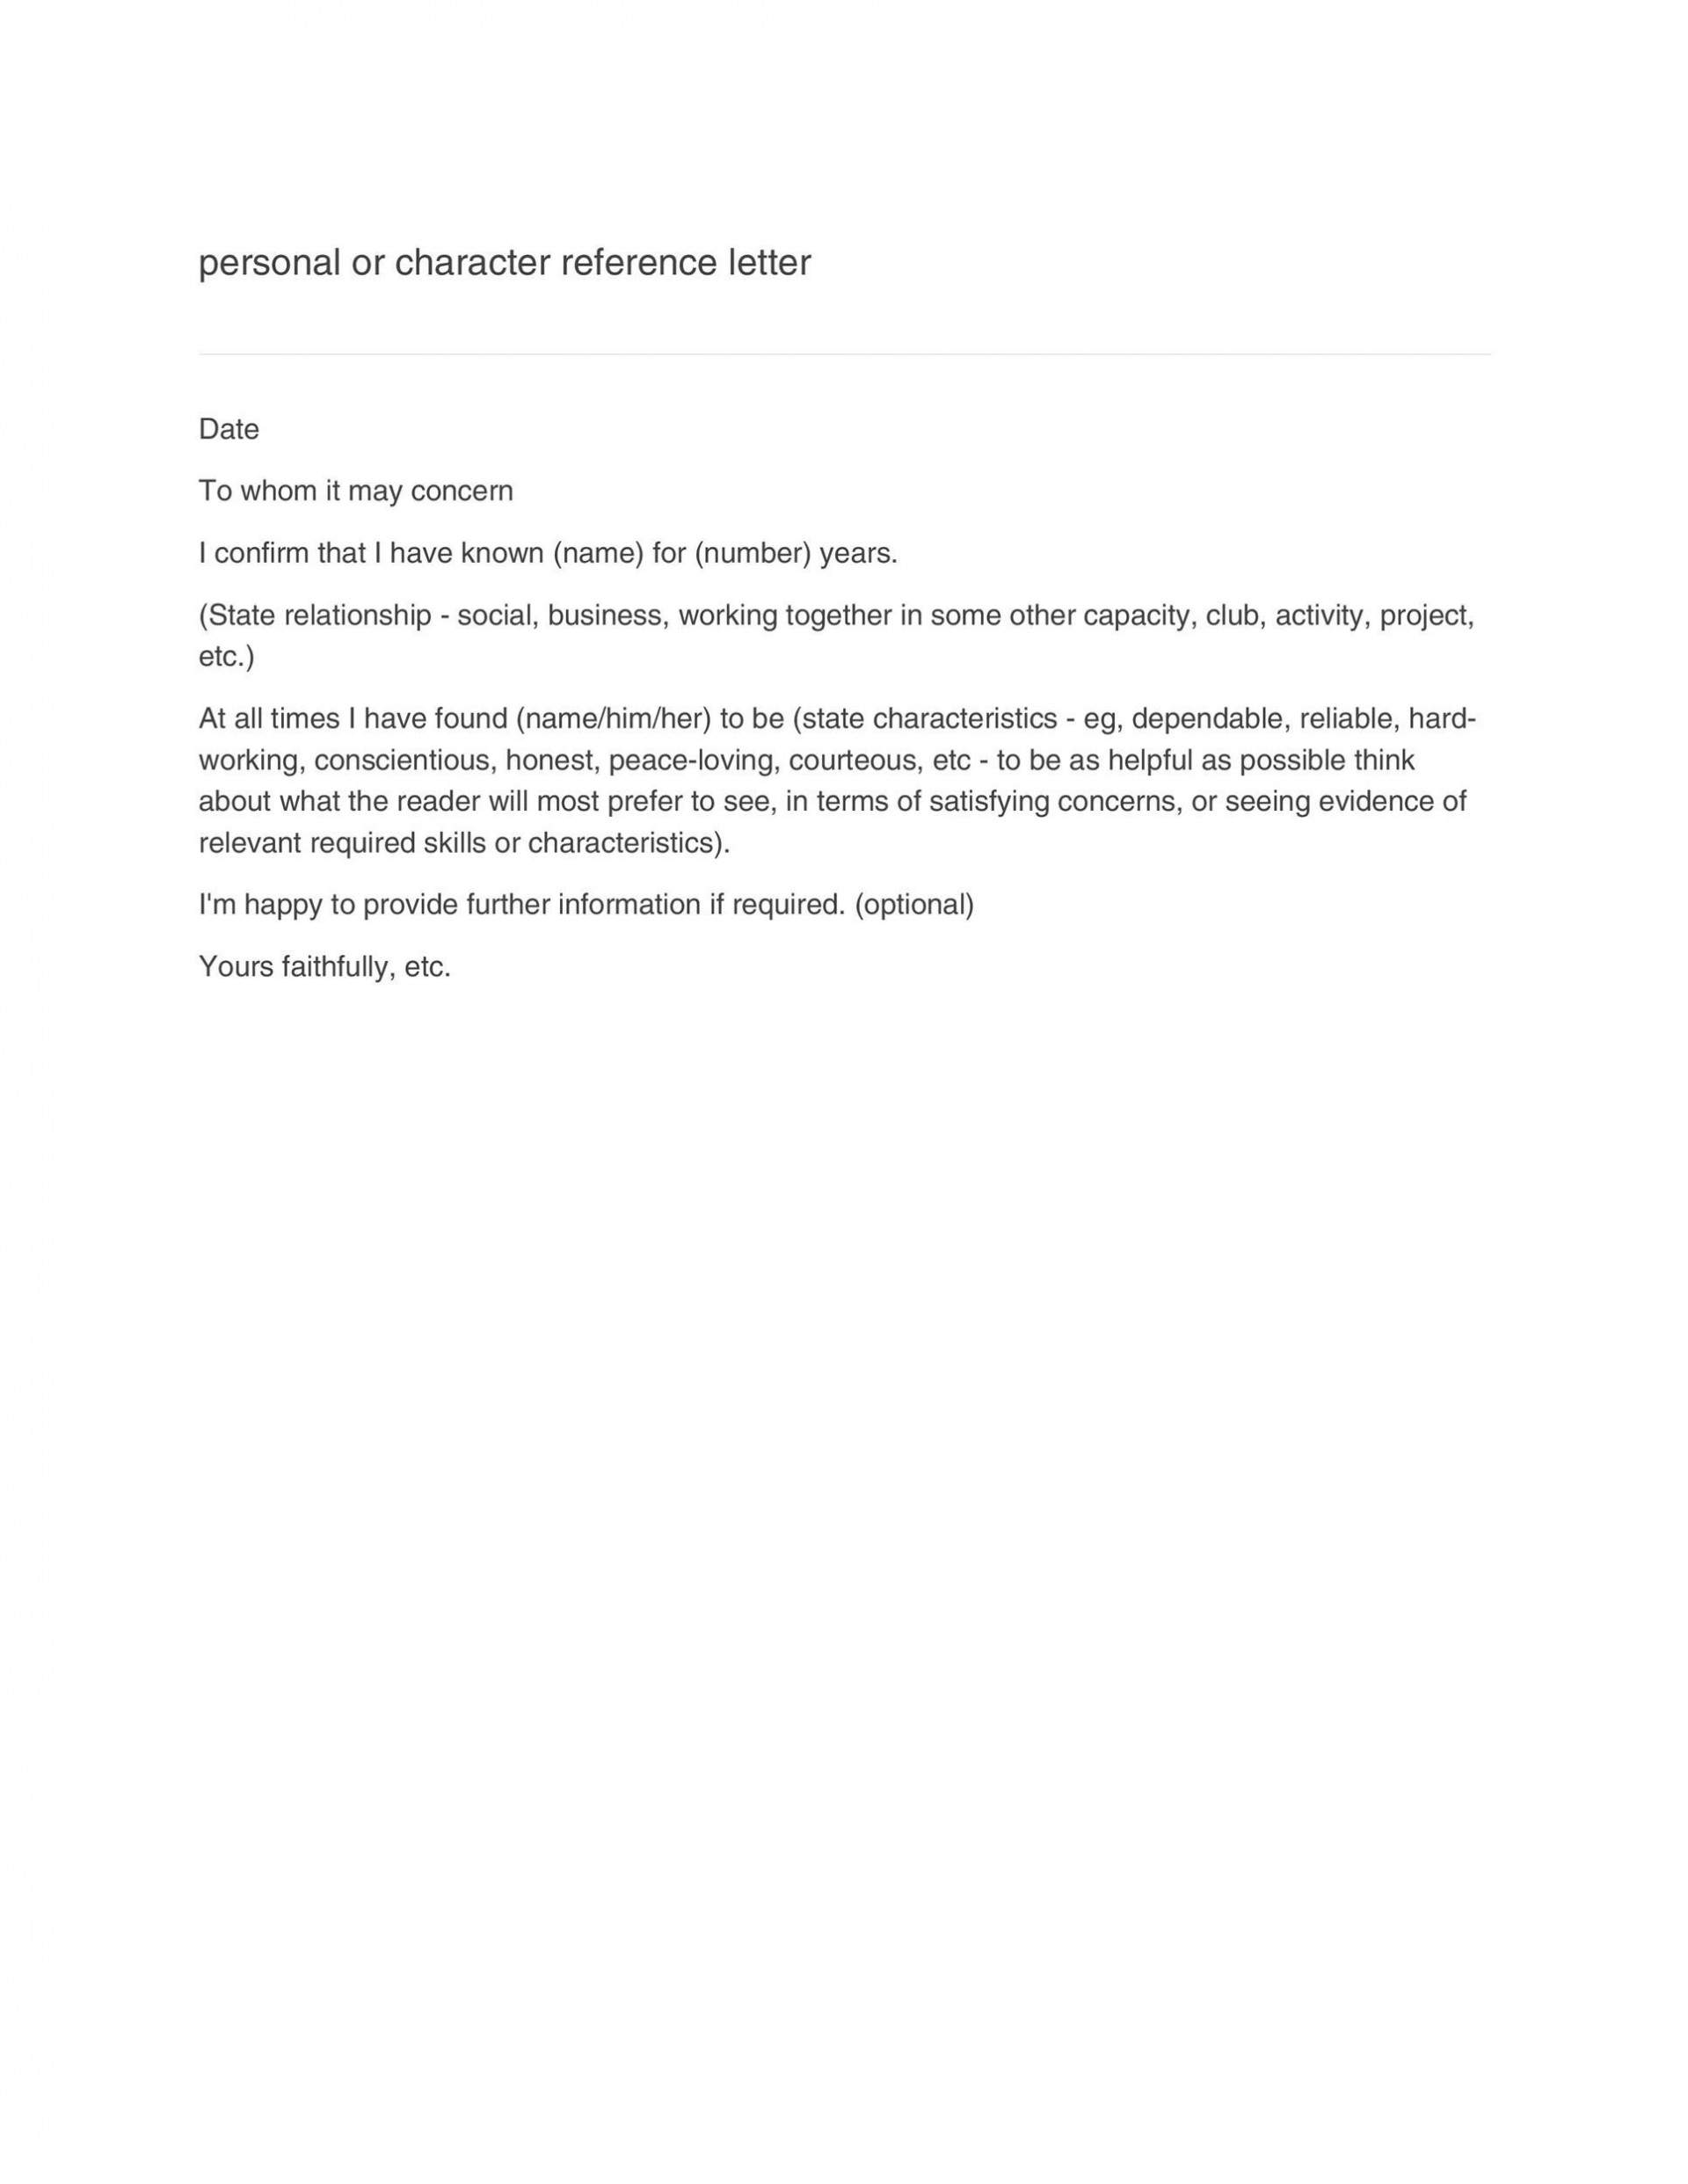 006 Staggering Personal Reference Letter Template Highest Clarity  Character Word For Rental Application1920